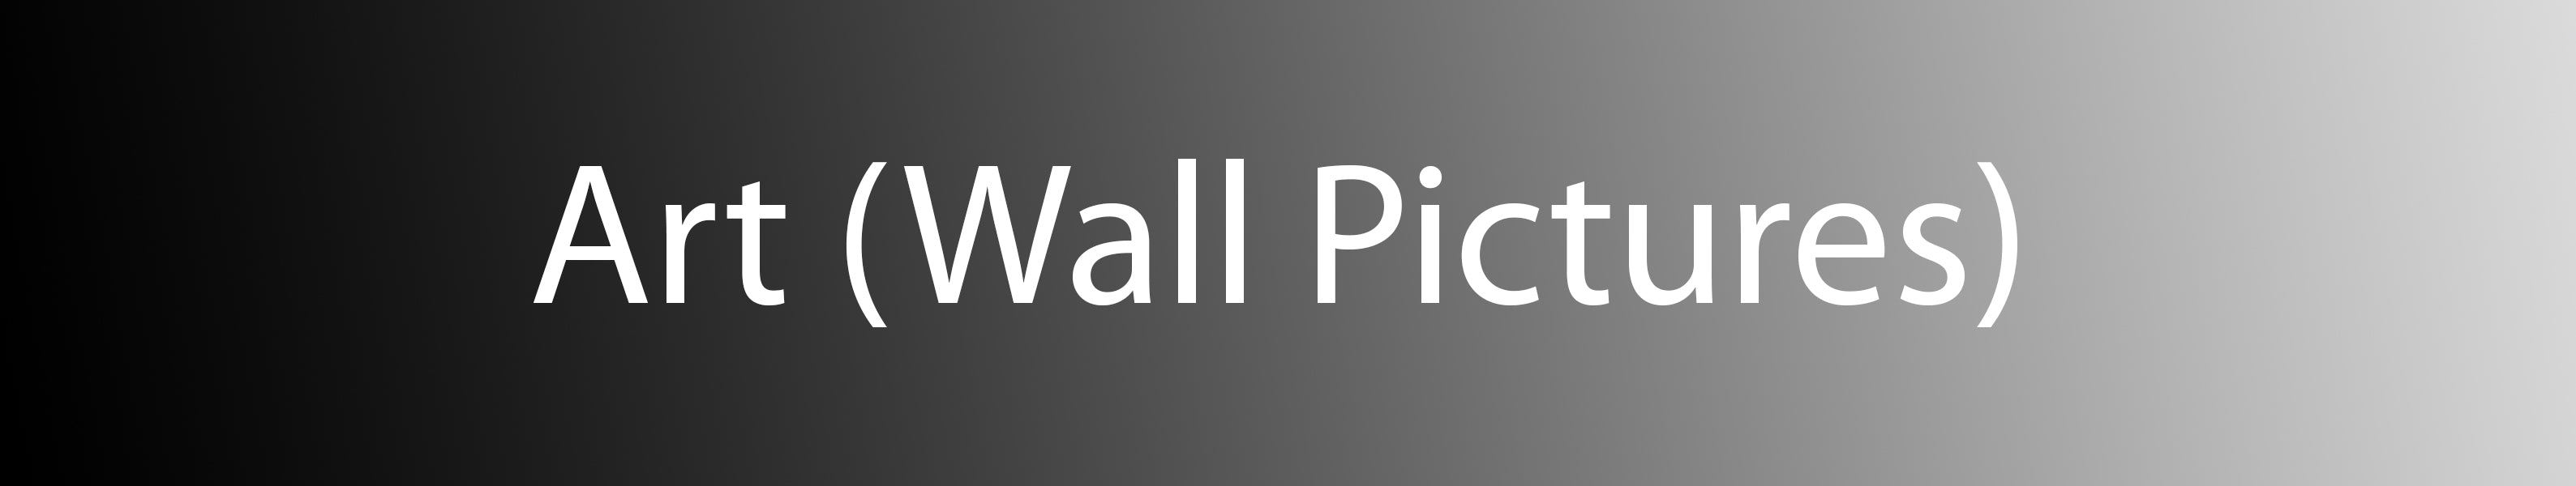 Art - Wall Pictures (Click Here)